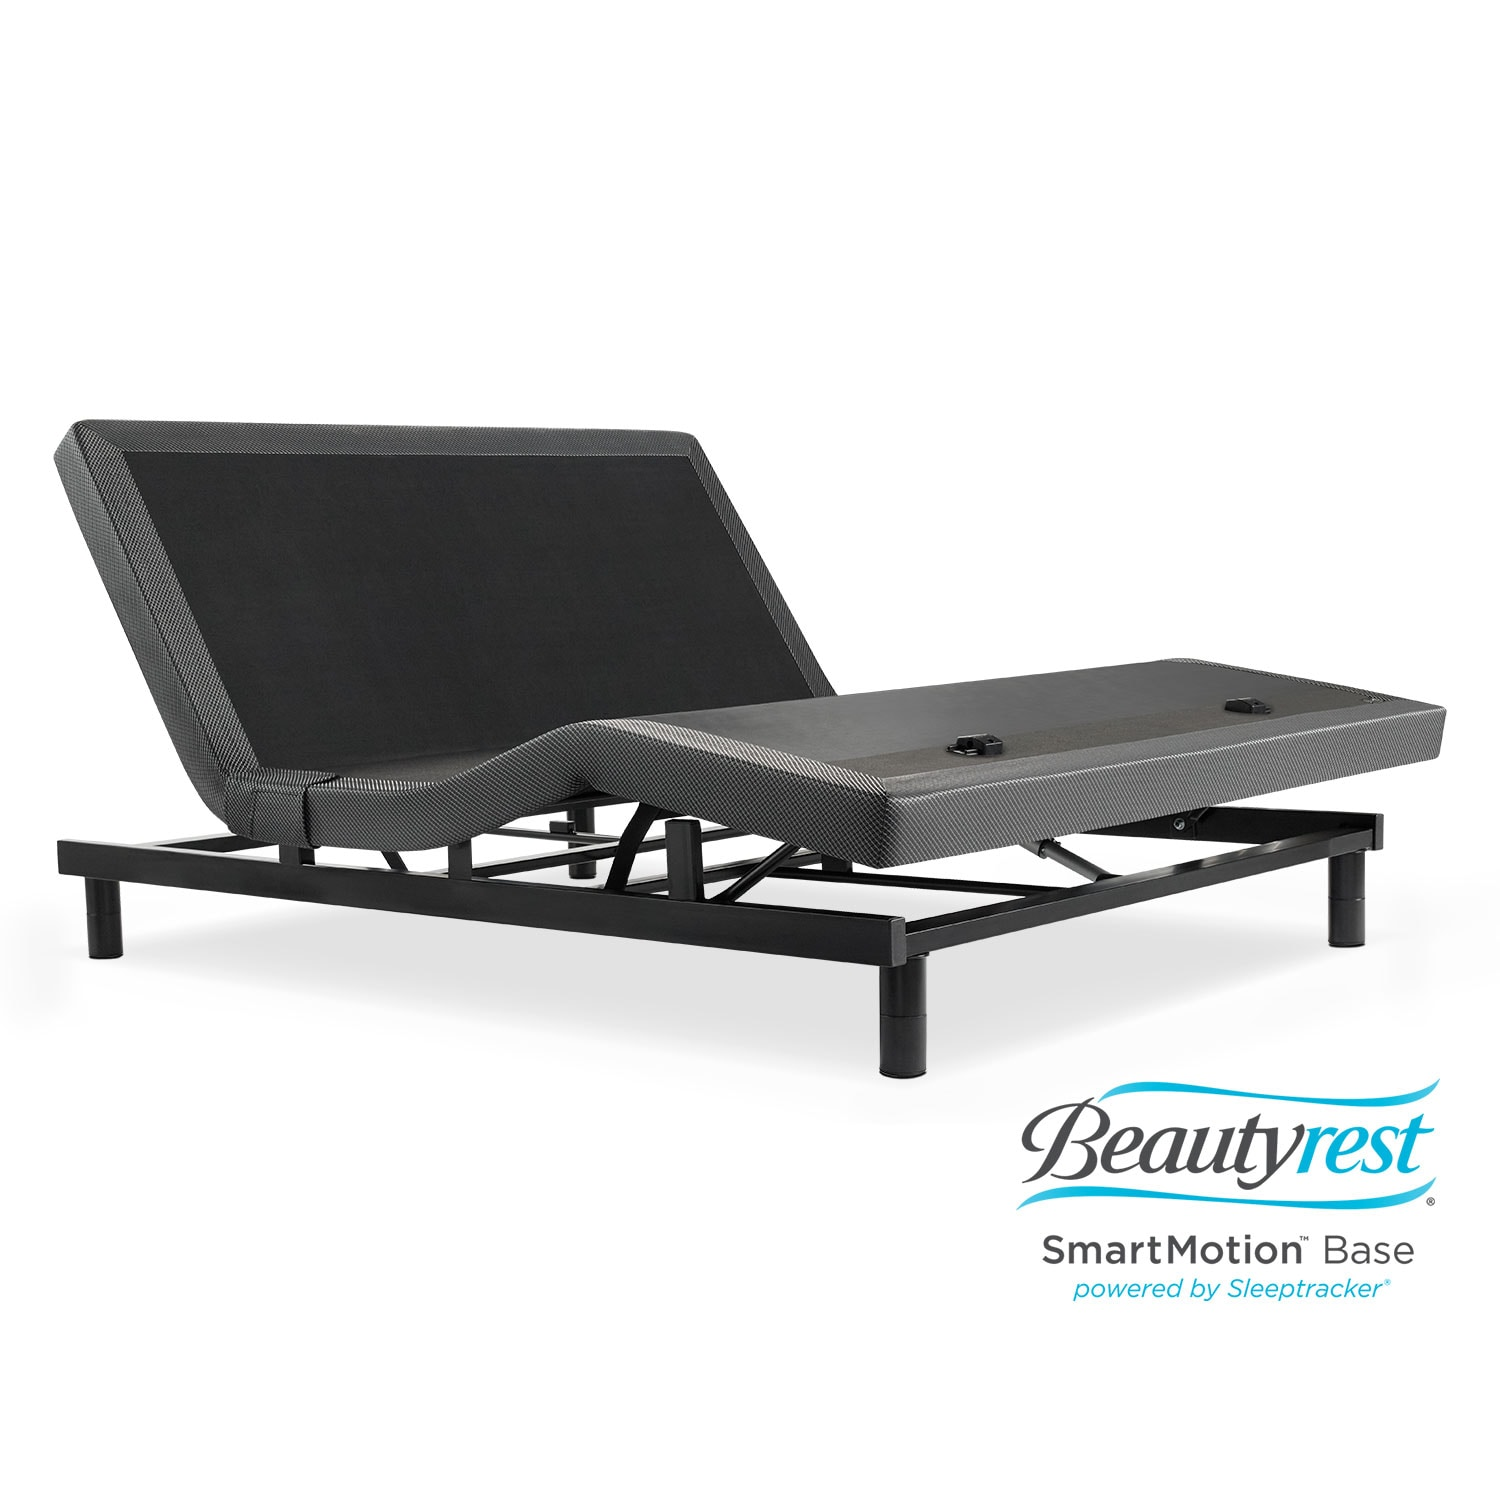 Mattresses and Bedding - Beautyrest SmartMotion 1.0 Queen Adjustable Base